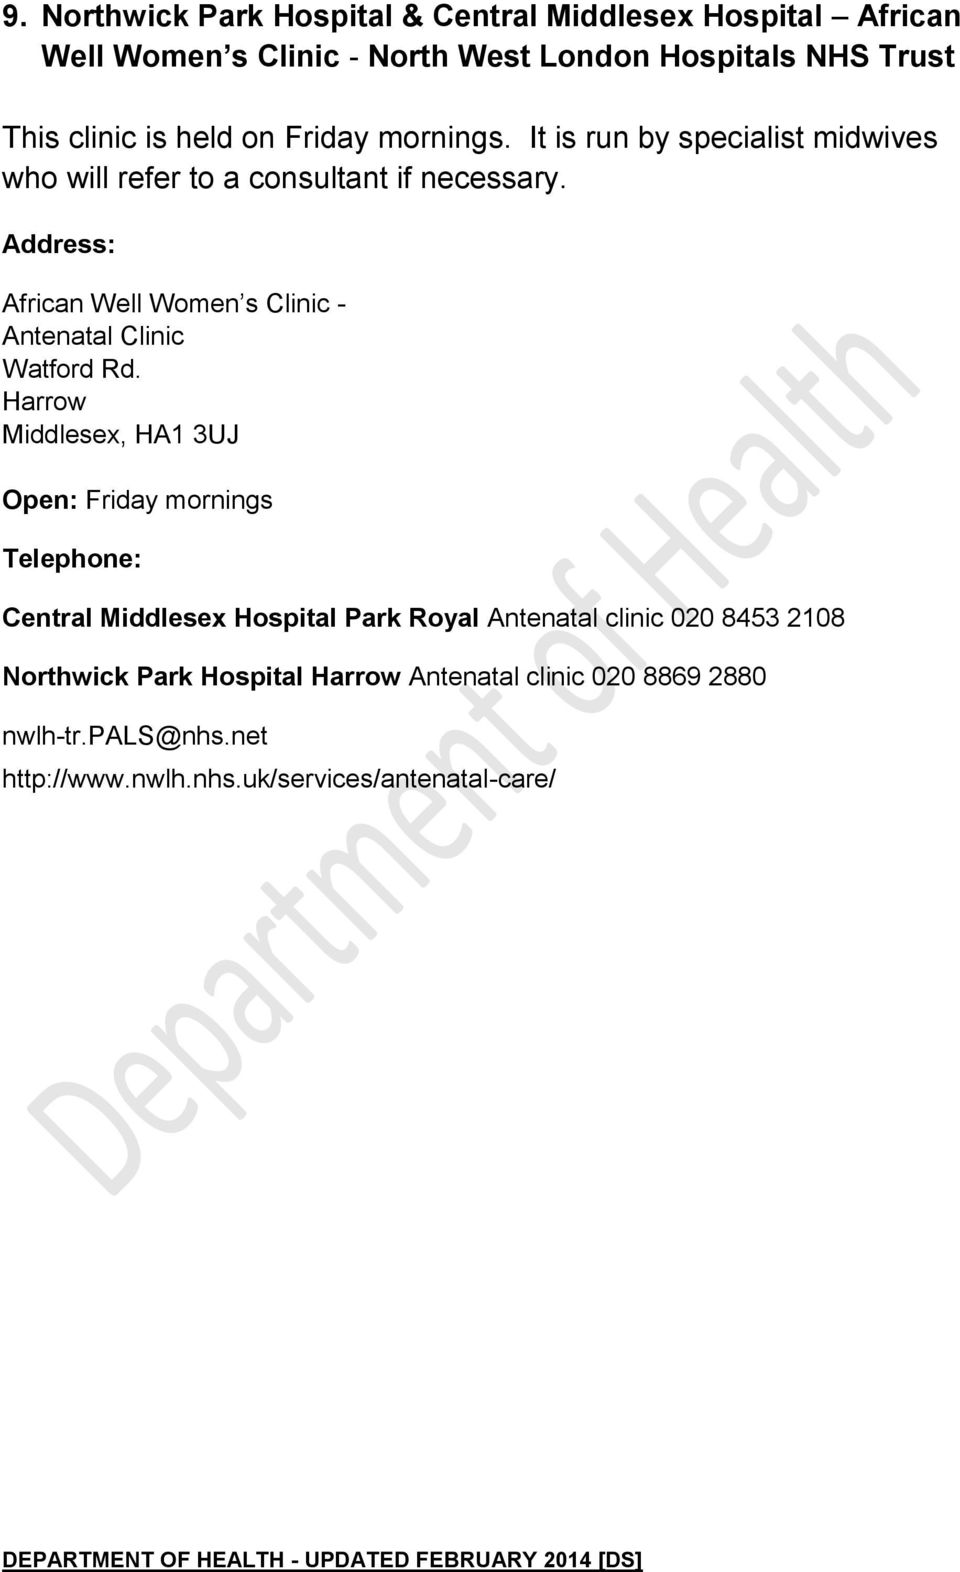 Nhs Specialist Services For Female Genital Mutilation Pdf